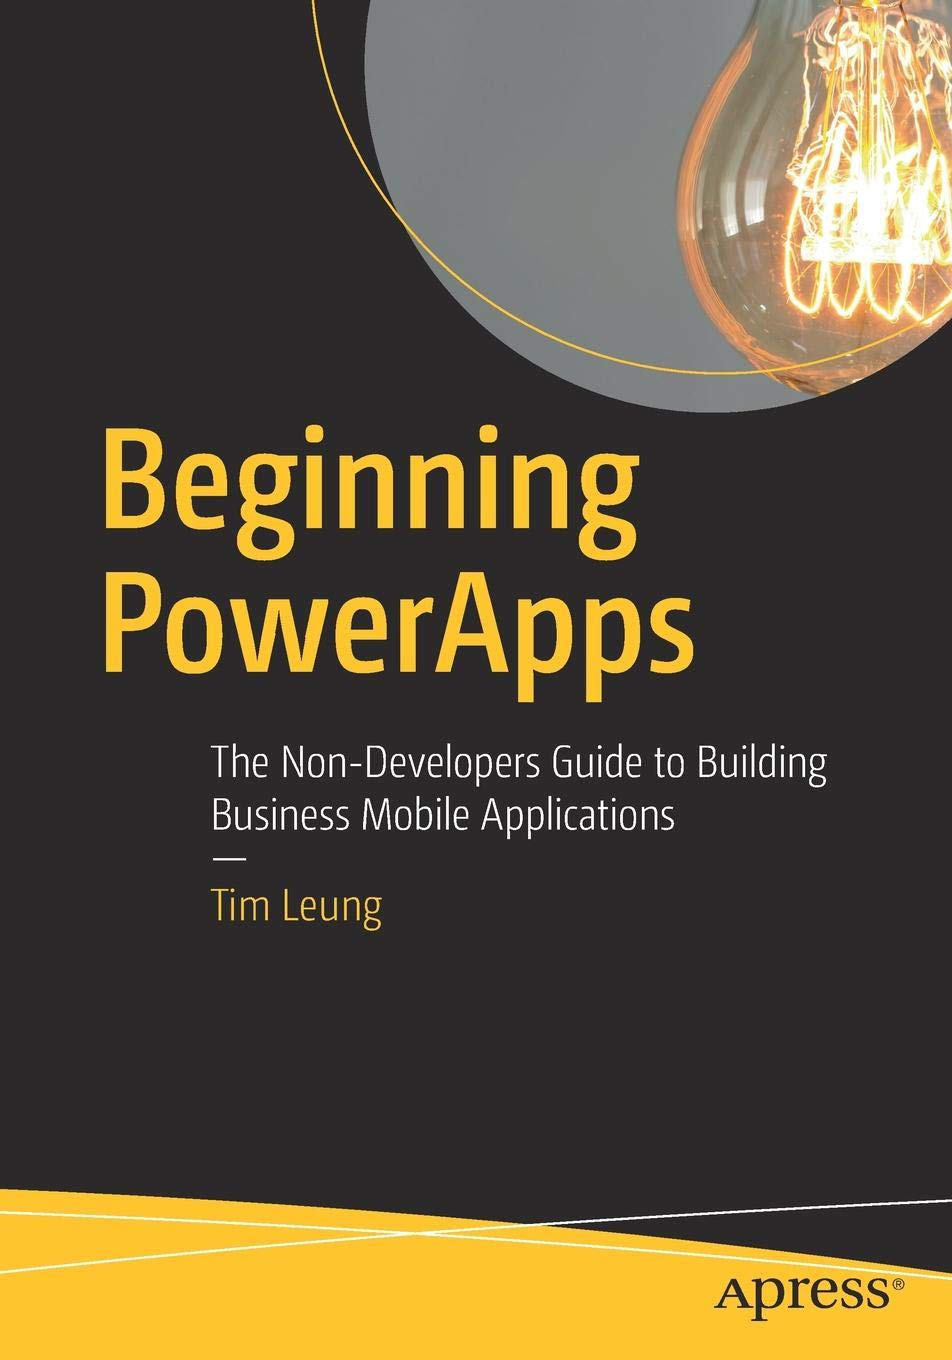 Beginning PowerApps: The Non-Developers Guide to Building Business Mobile Applications by Apress